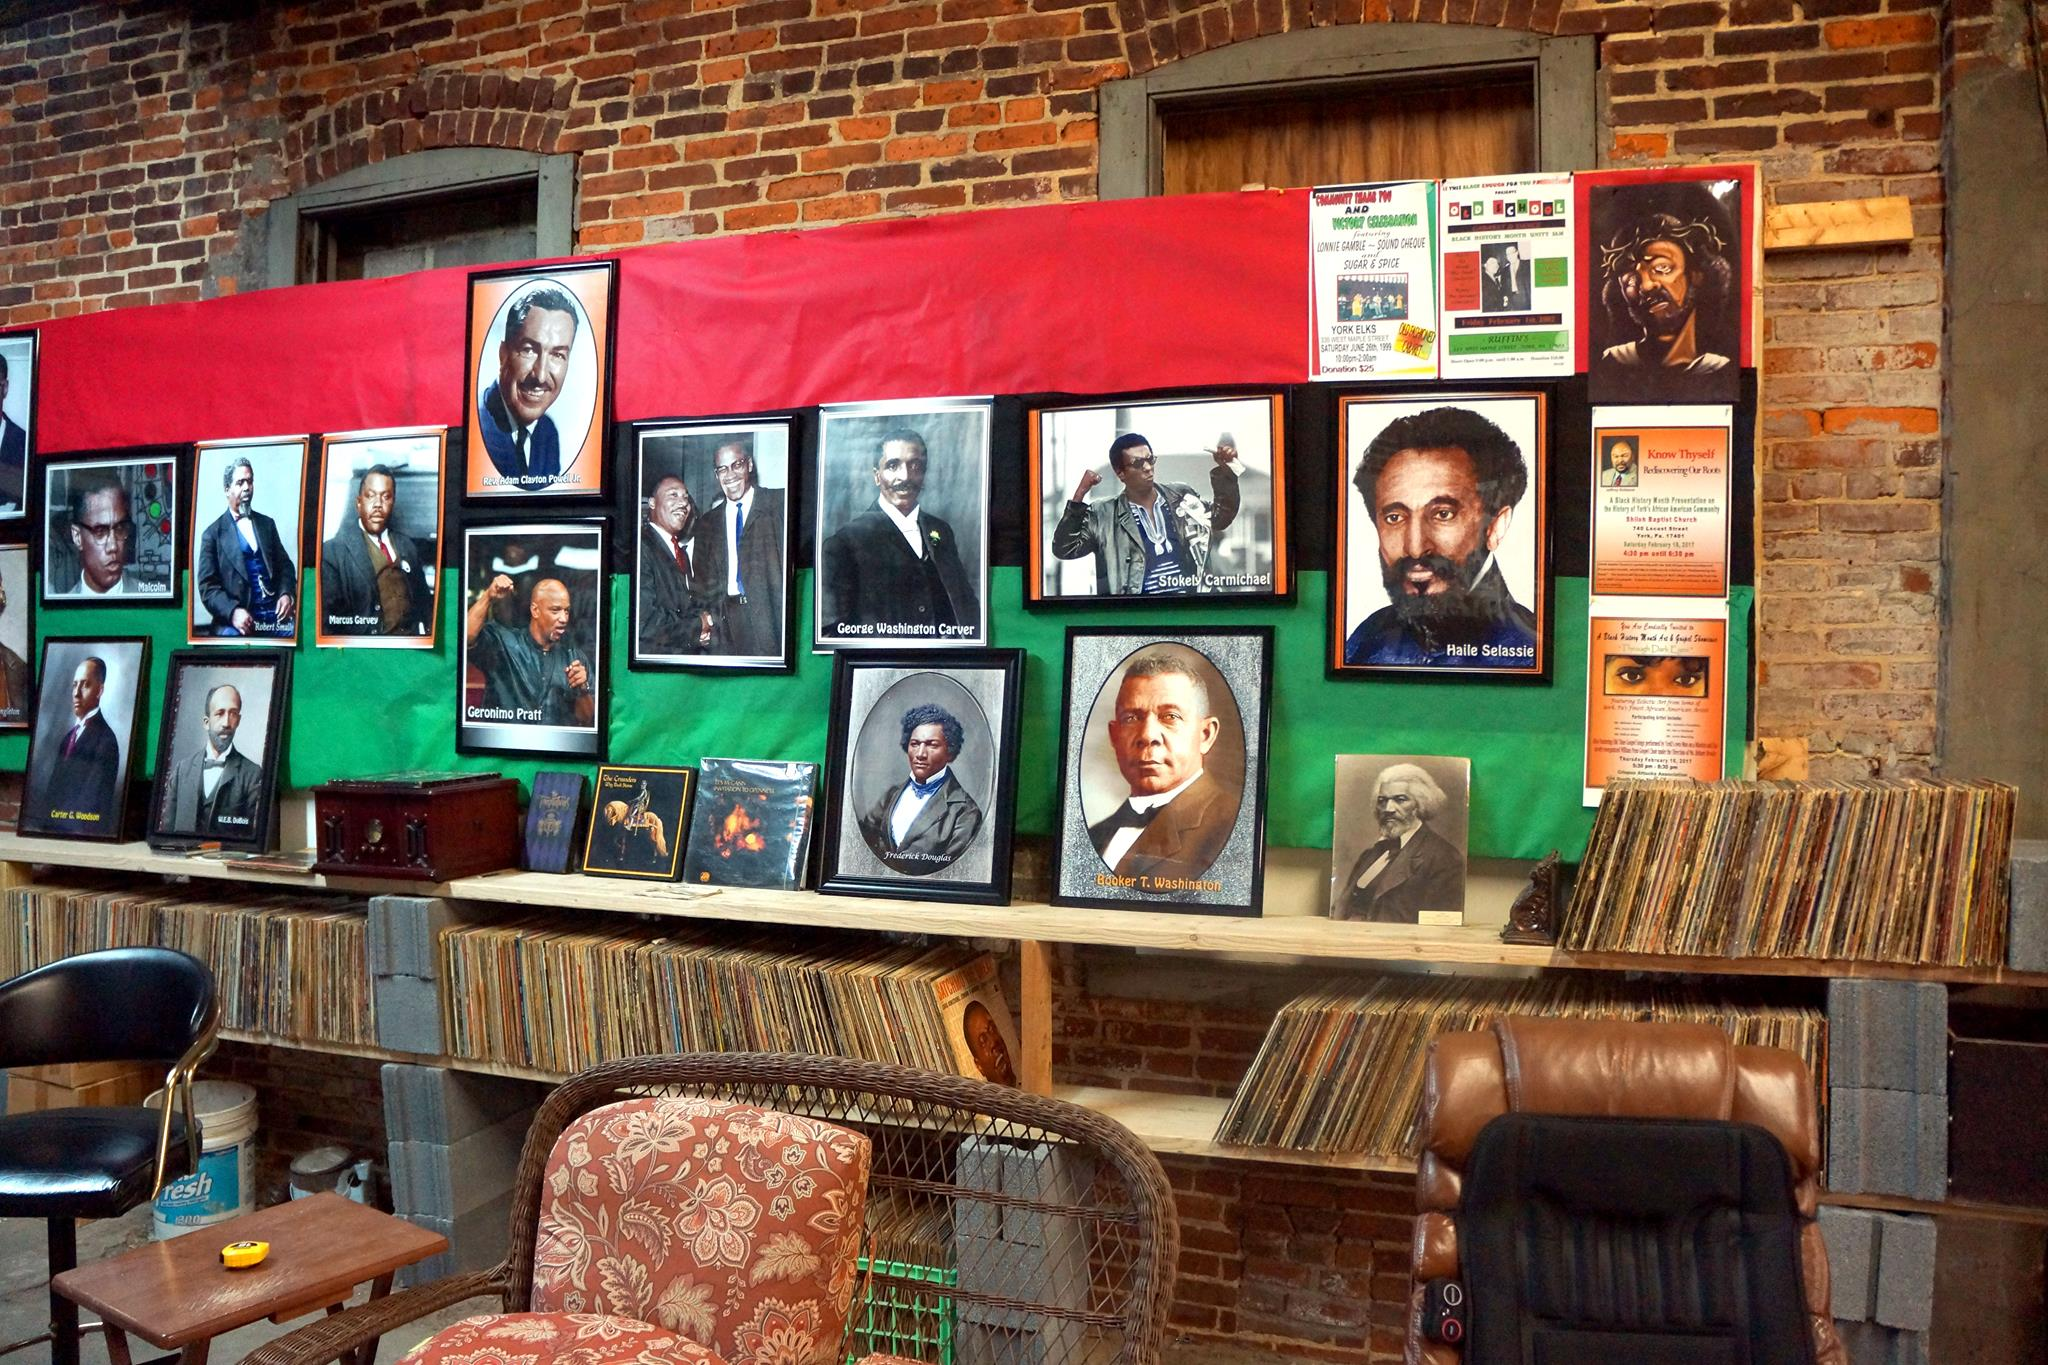 York Black History – Exploring history with the aims of